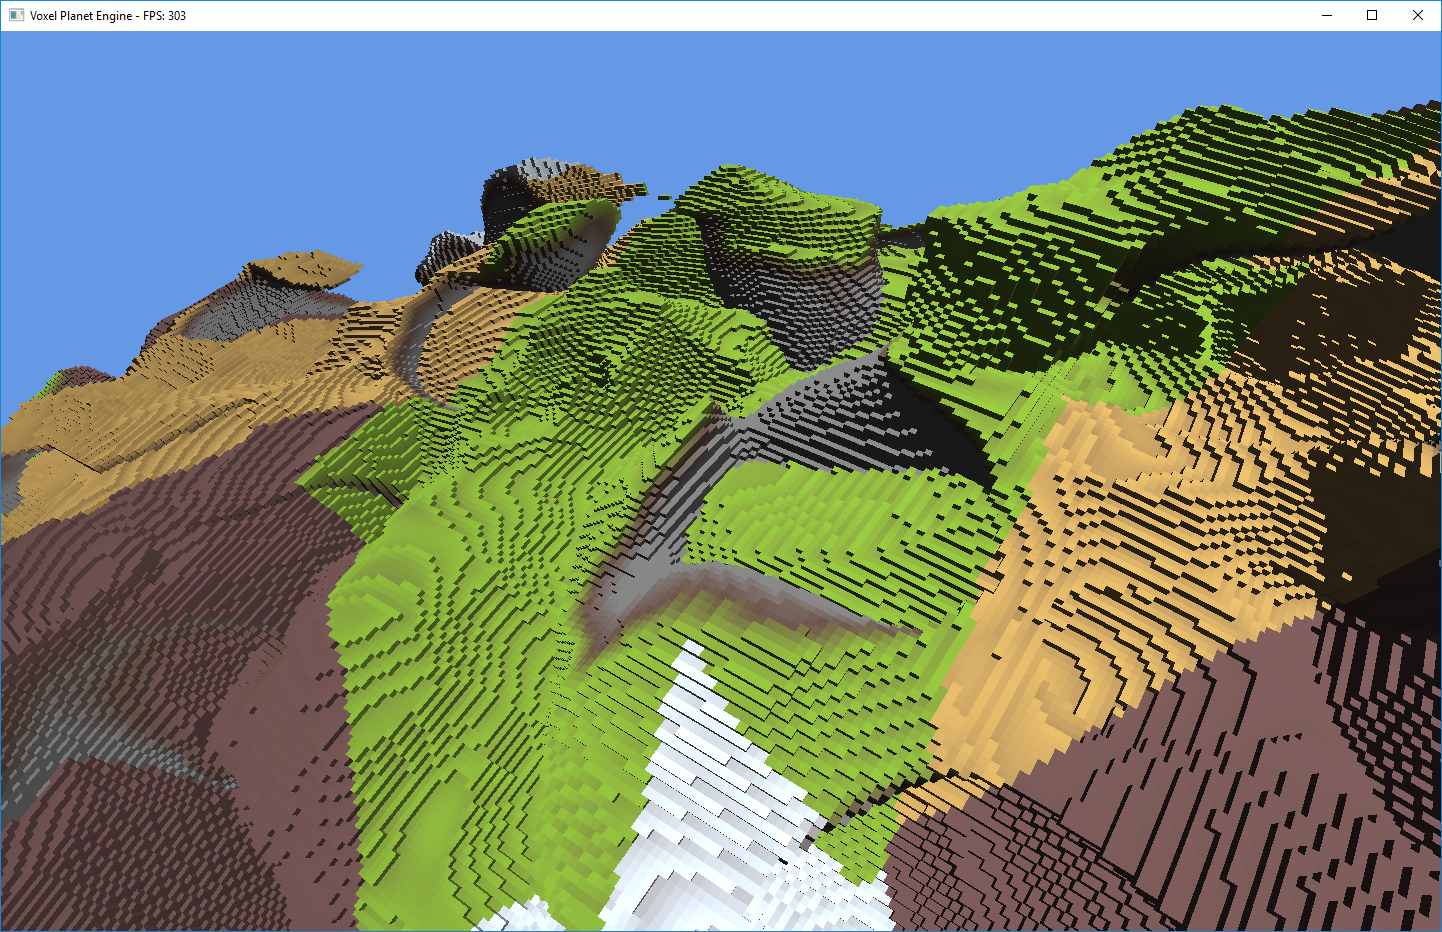 Voxel Planet Engine